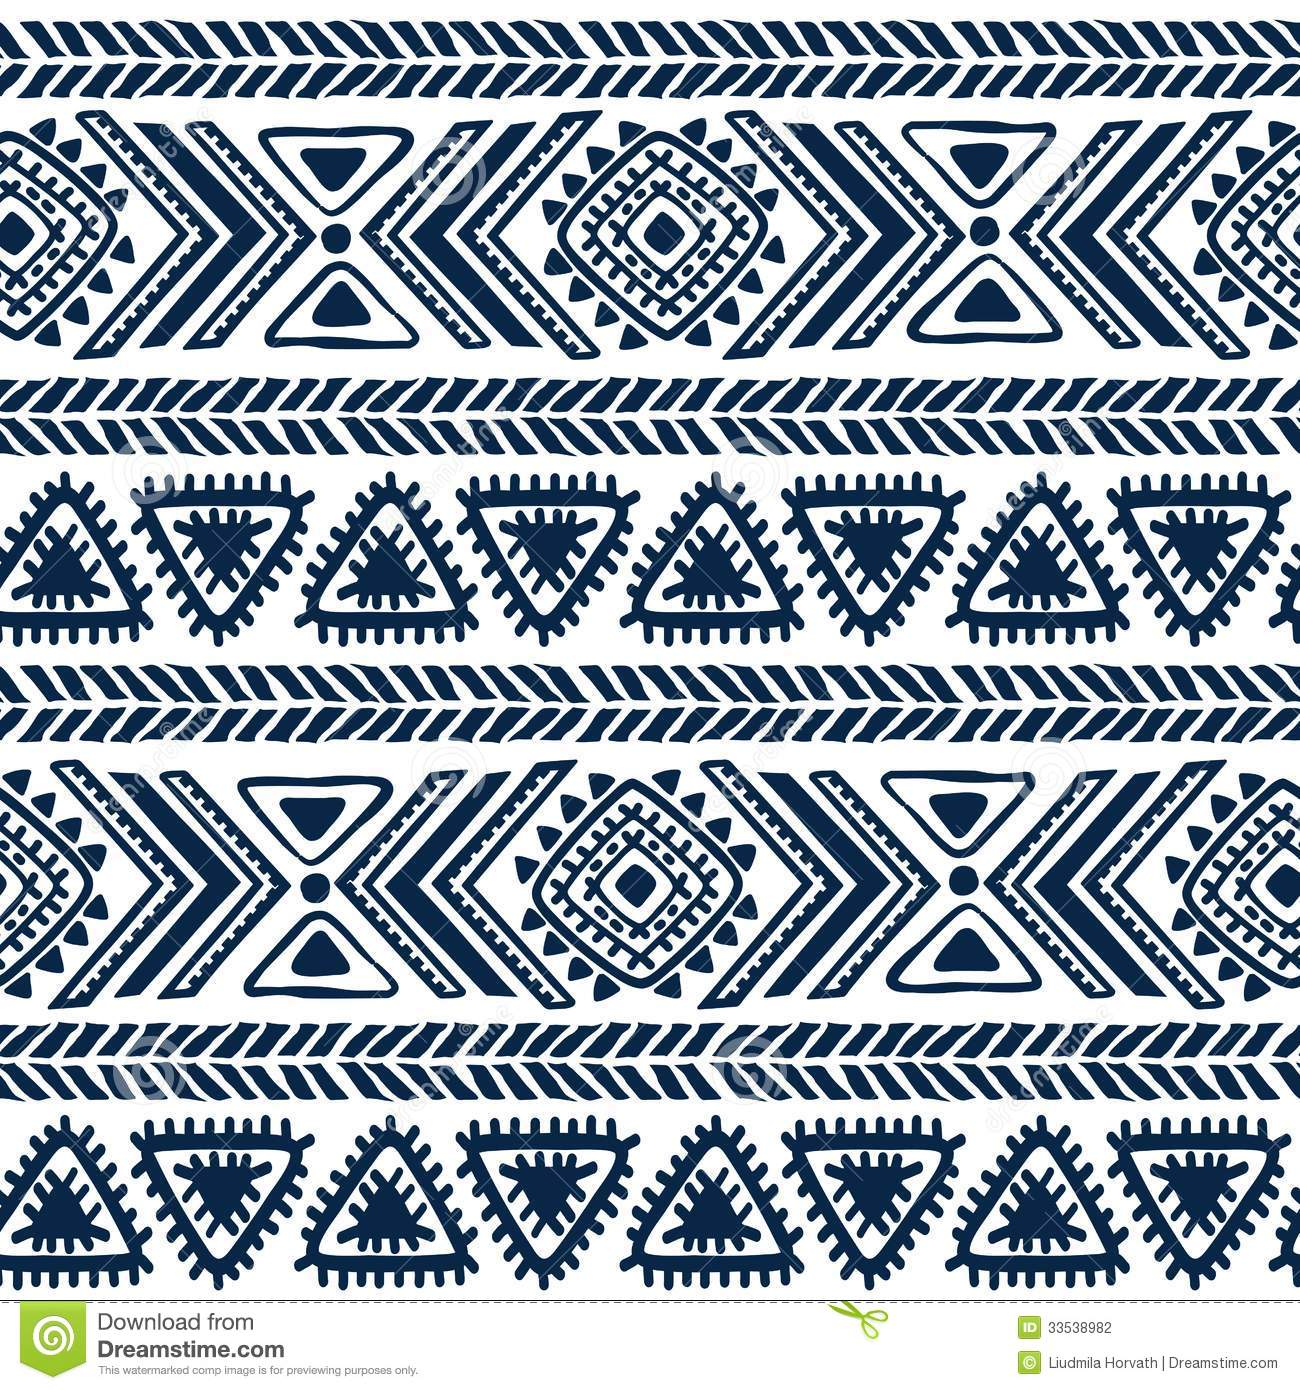 Abstract Tribal Pattern Stock Photography - Image: 33538982 - photo#13